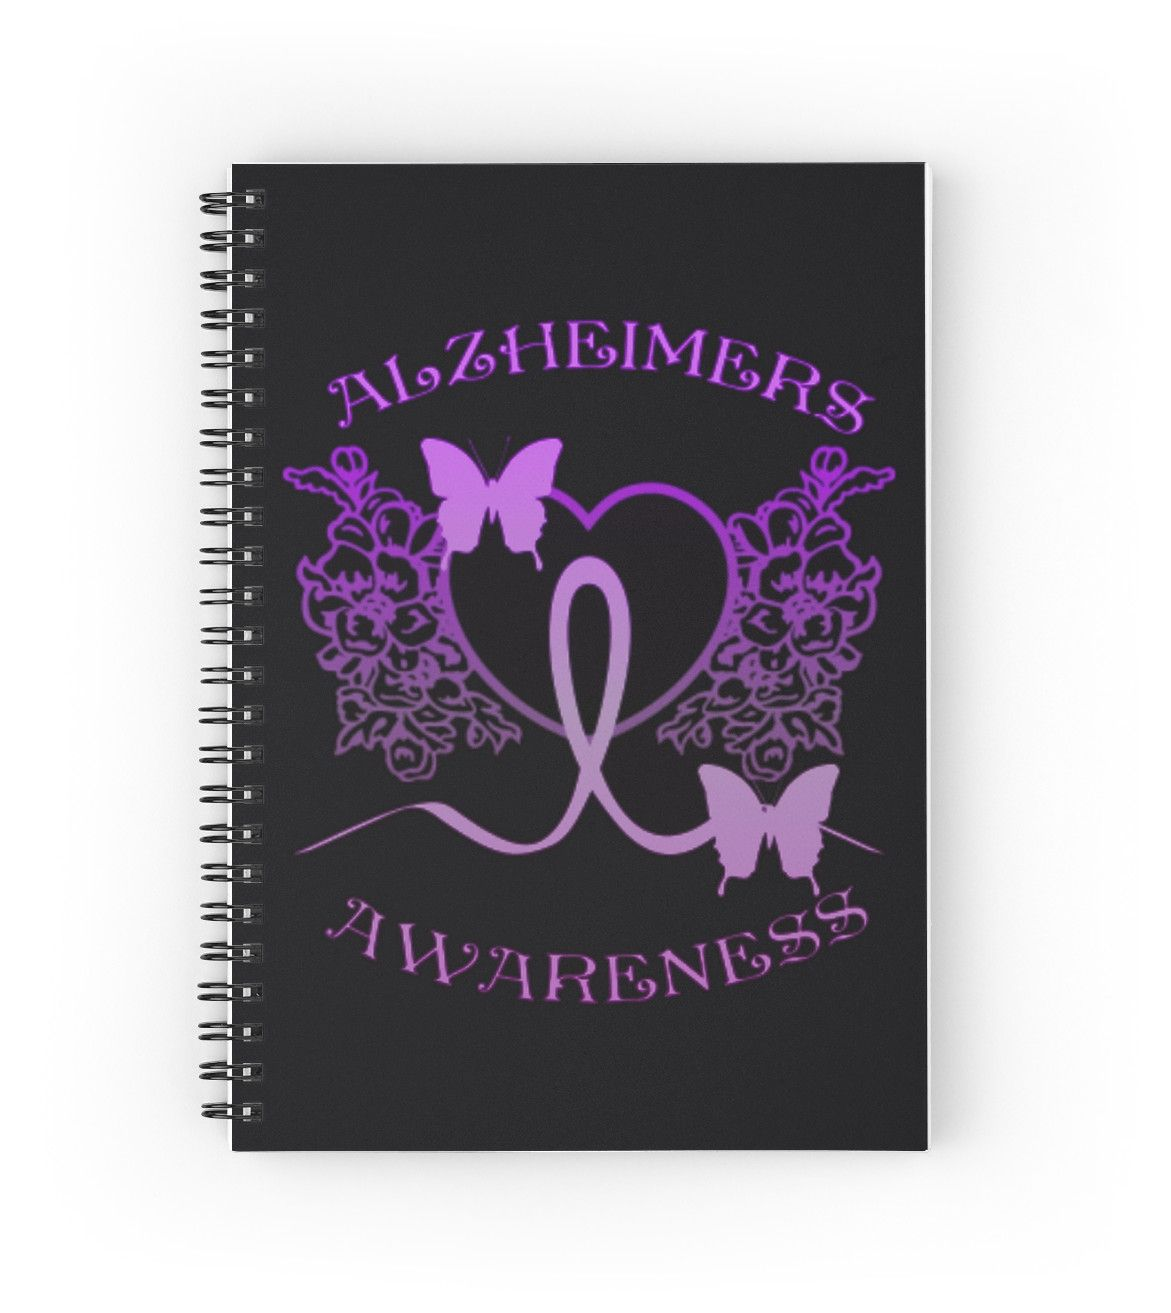 Alzheimers Awareness Purple Butterflies   Hardcover journals also available in ruled line, graph, or blank.